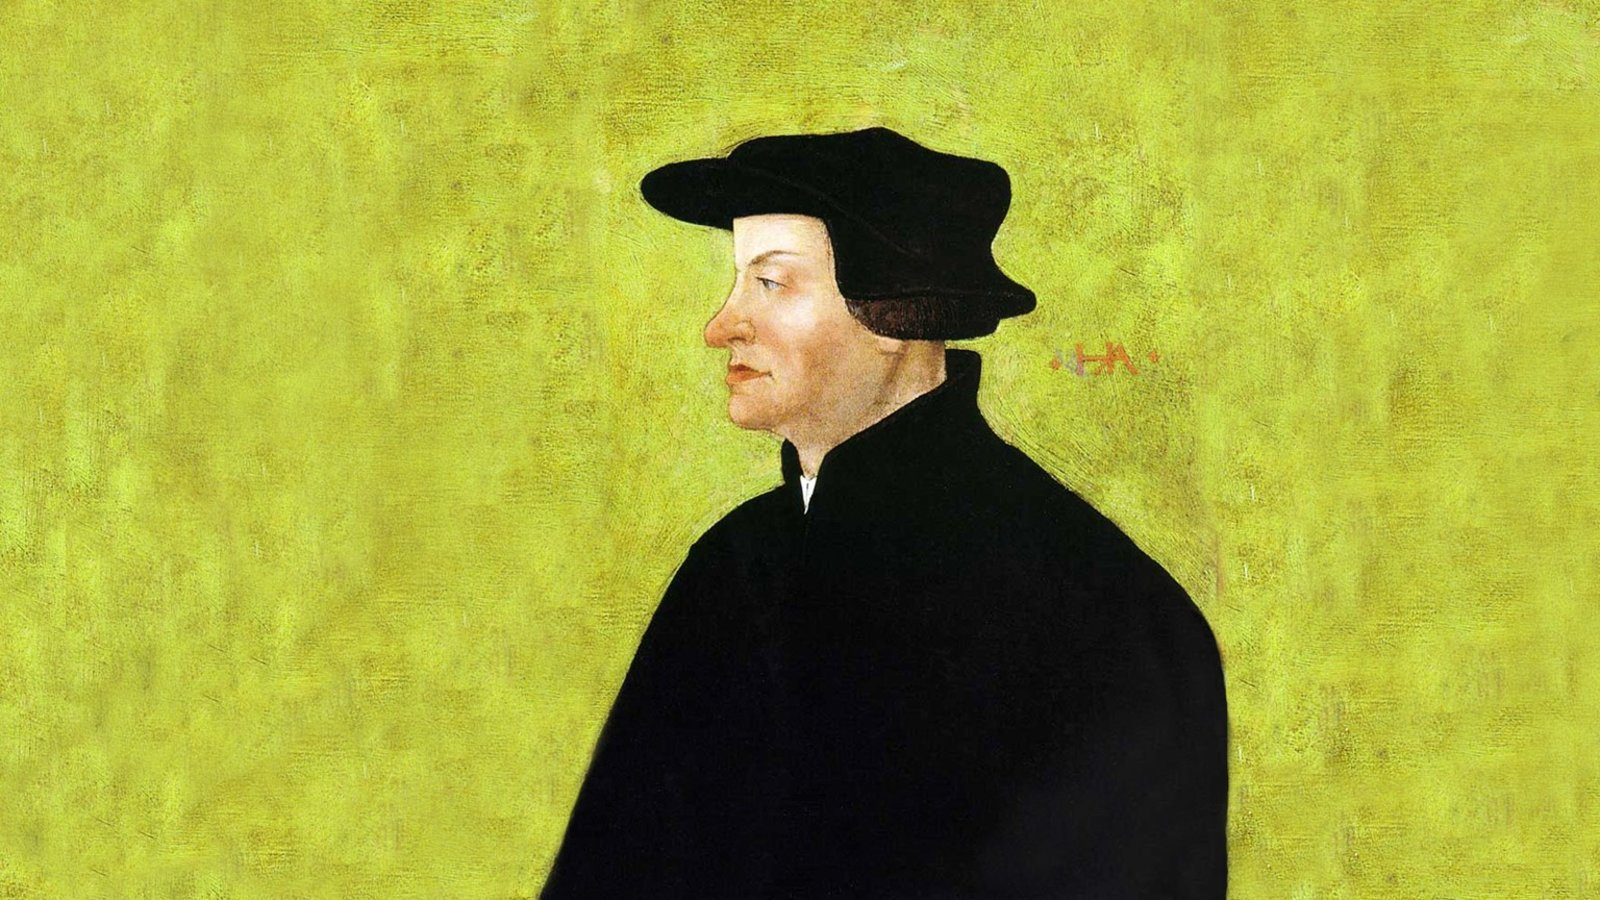 Renaissance and Reformation: Connections